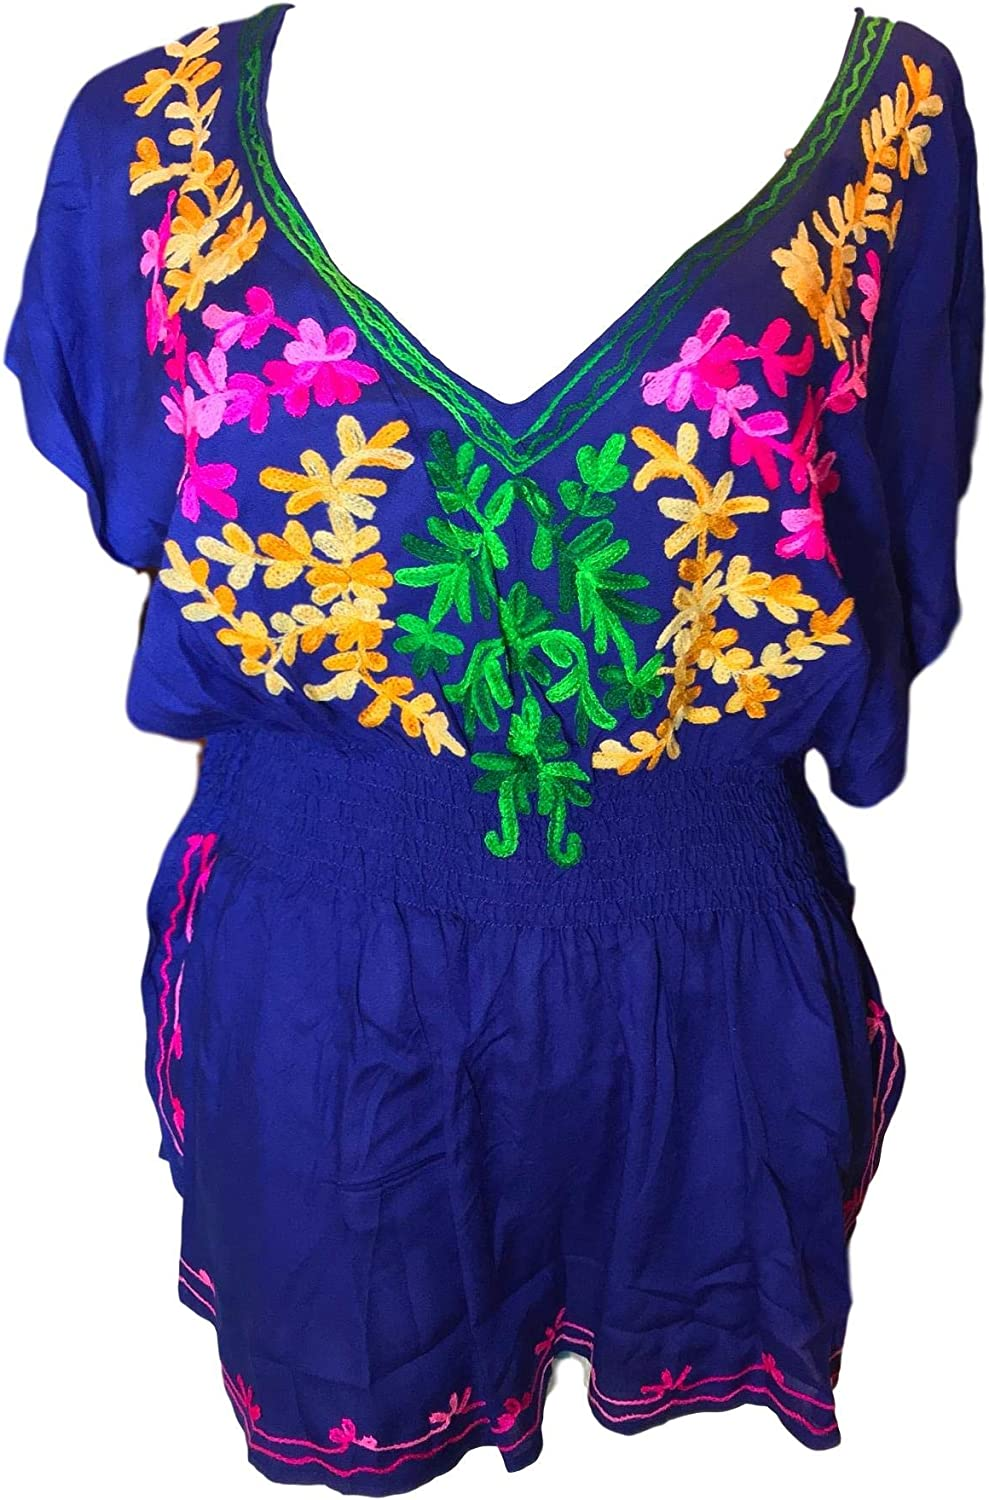 Angelina Commerces Authentic Mexican Hand Crafted Women Blouses Flowers Design